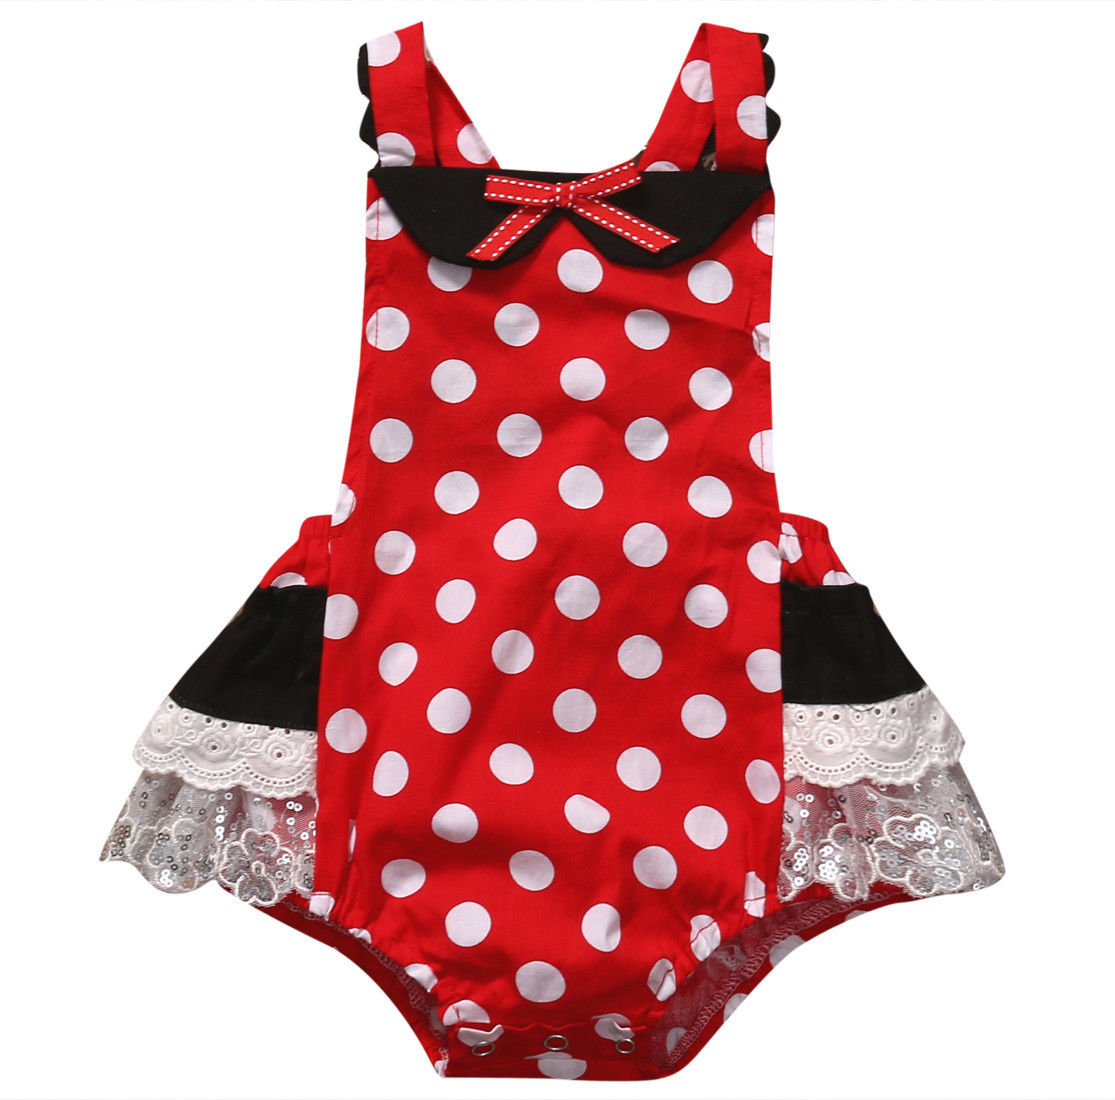 2017 Minnie Mouse Polka Dot Baby Set Newborn Infant Baby Girl Summer   Romper   Baby Jumpsuit Lace Outfit Sunsuit Children Clothing